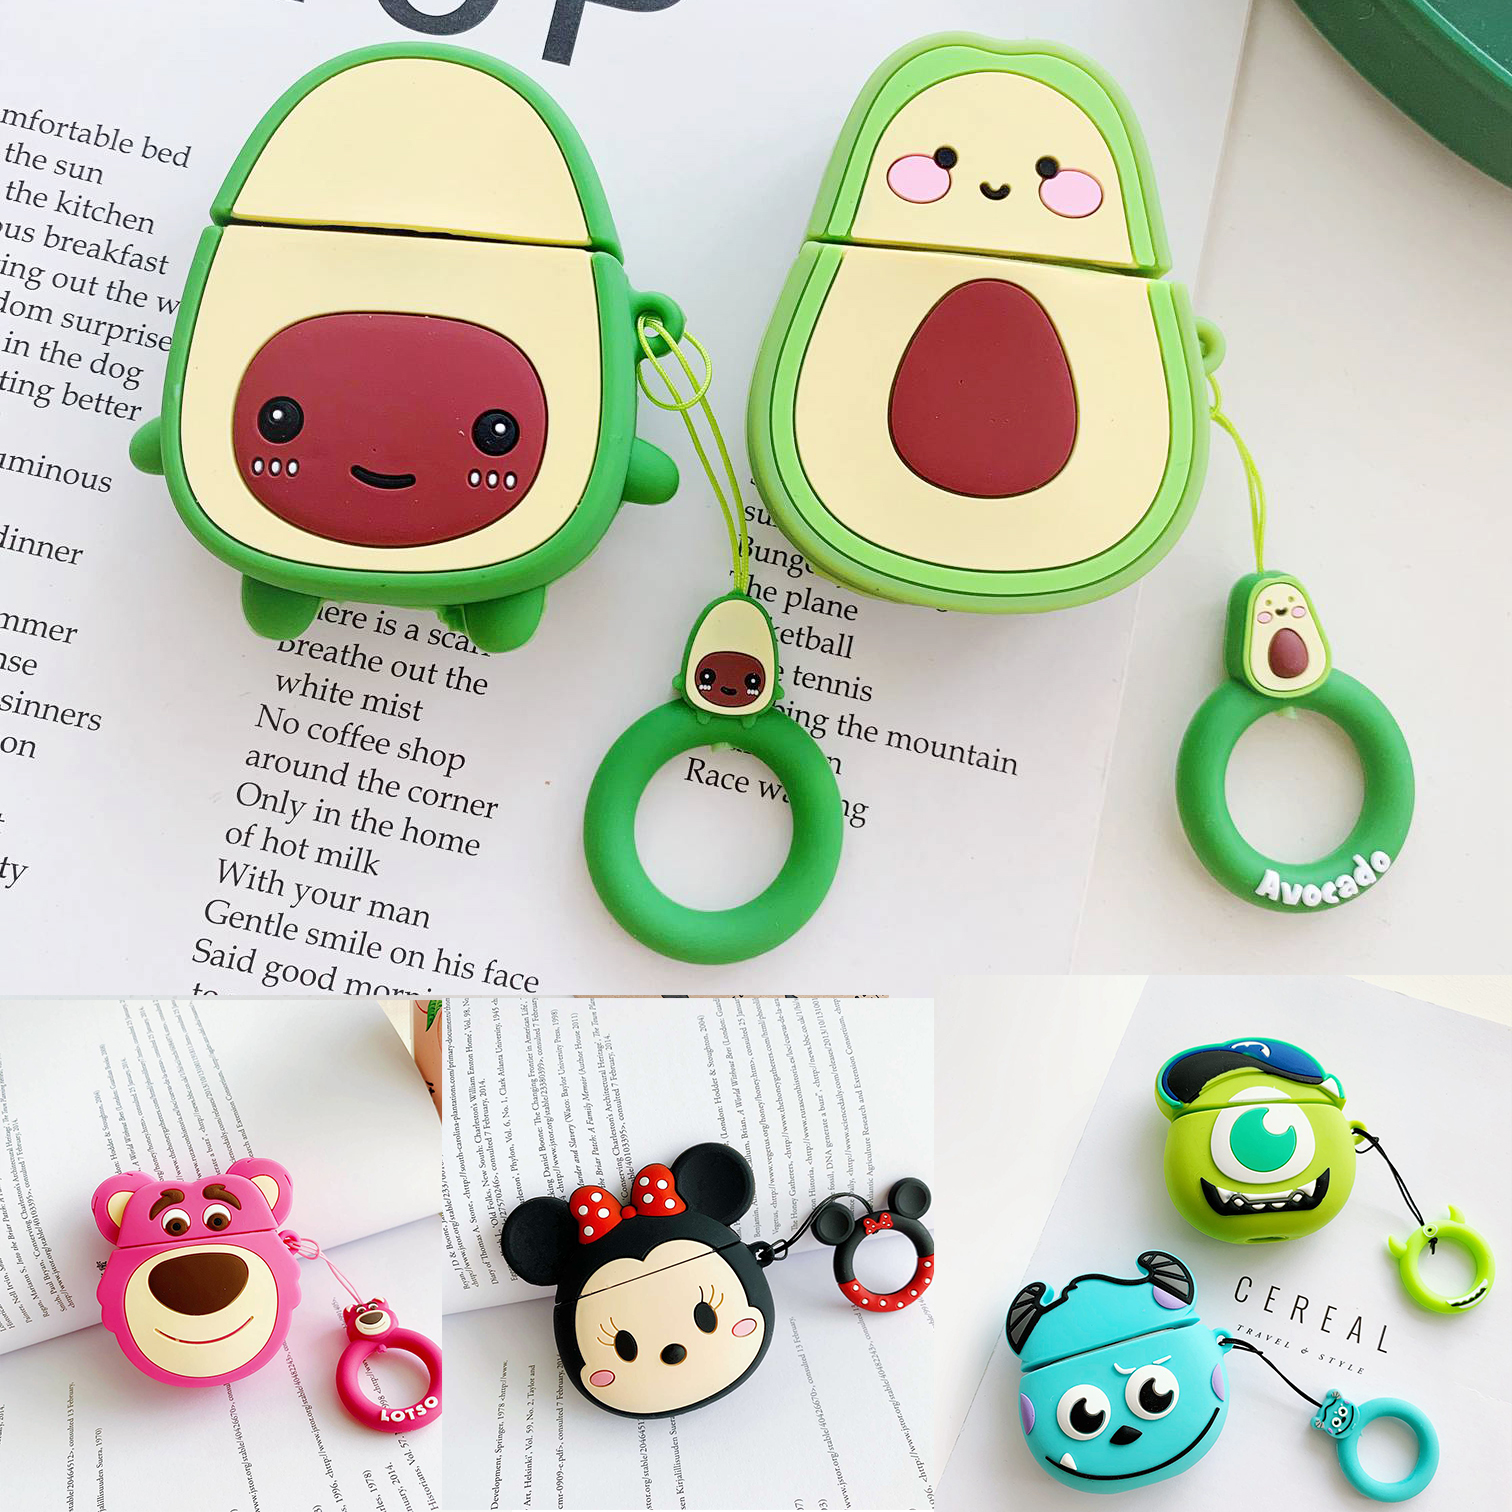 For AirPods Case Cute Peach Avocado Cartoon With Loop Cover Cartoon Wireless Earphone Case For Air Pods2 Silicon Headphone Cover